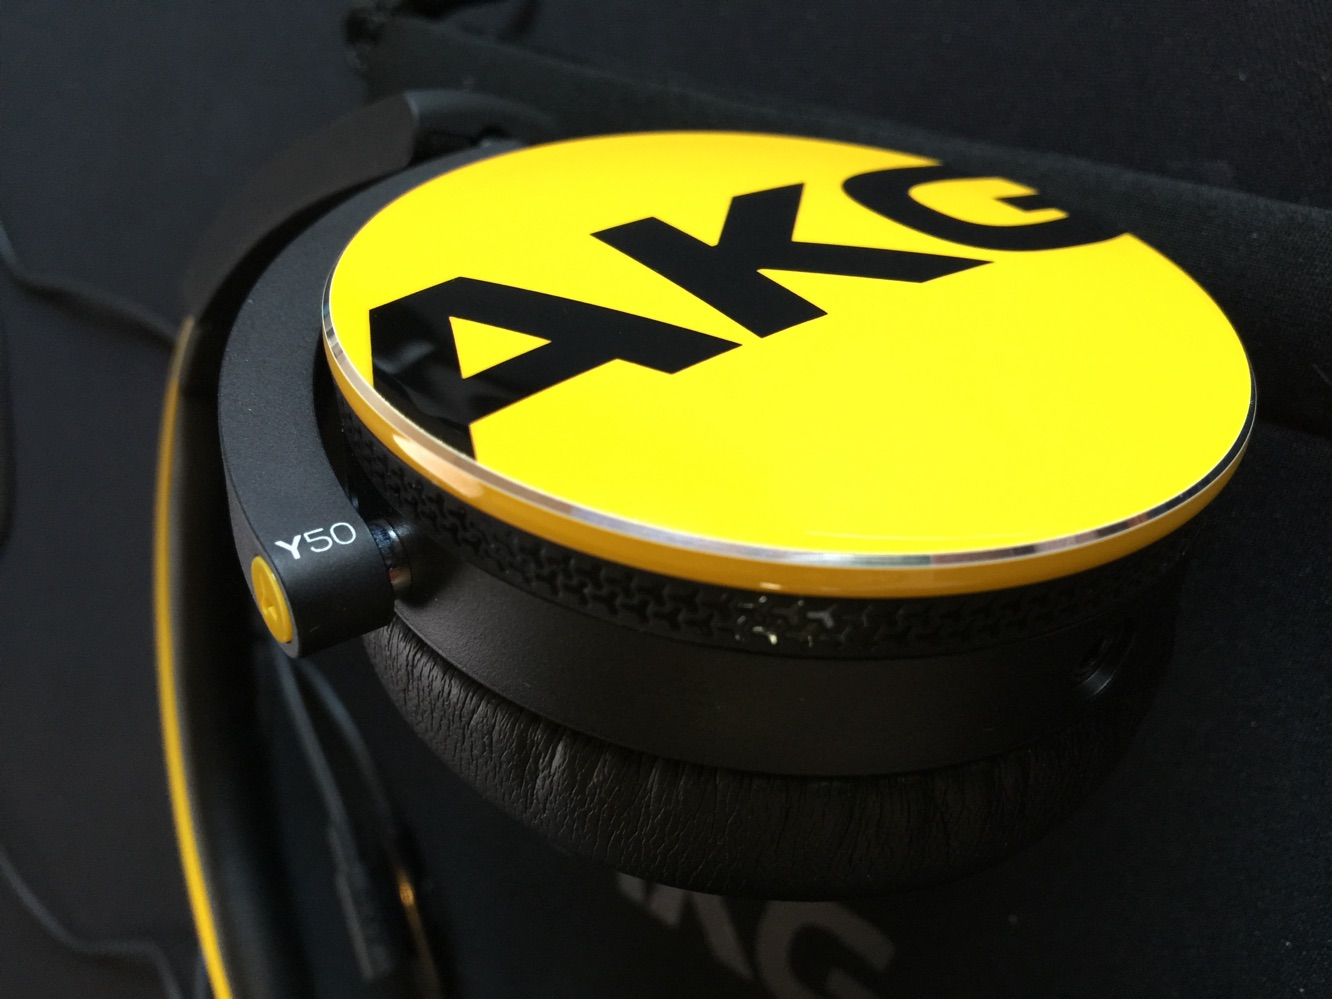 Review: AKG Y50 On-Ear Headphones